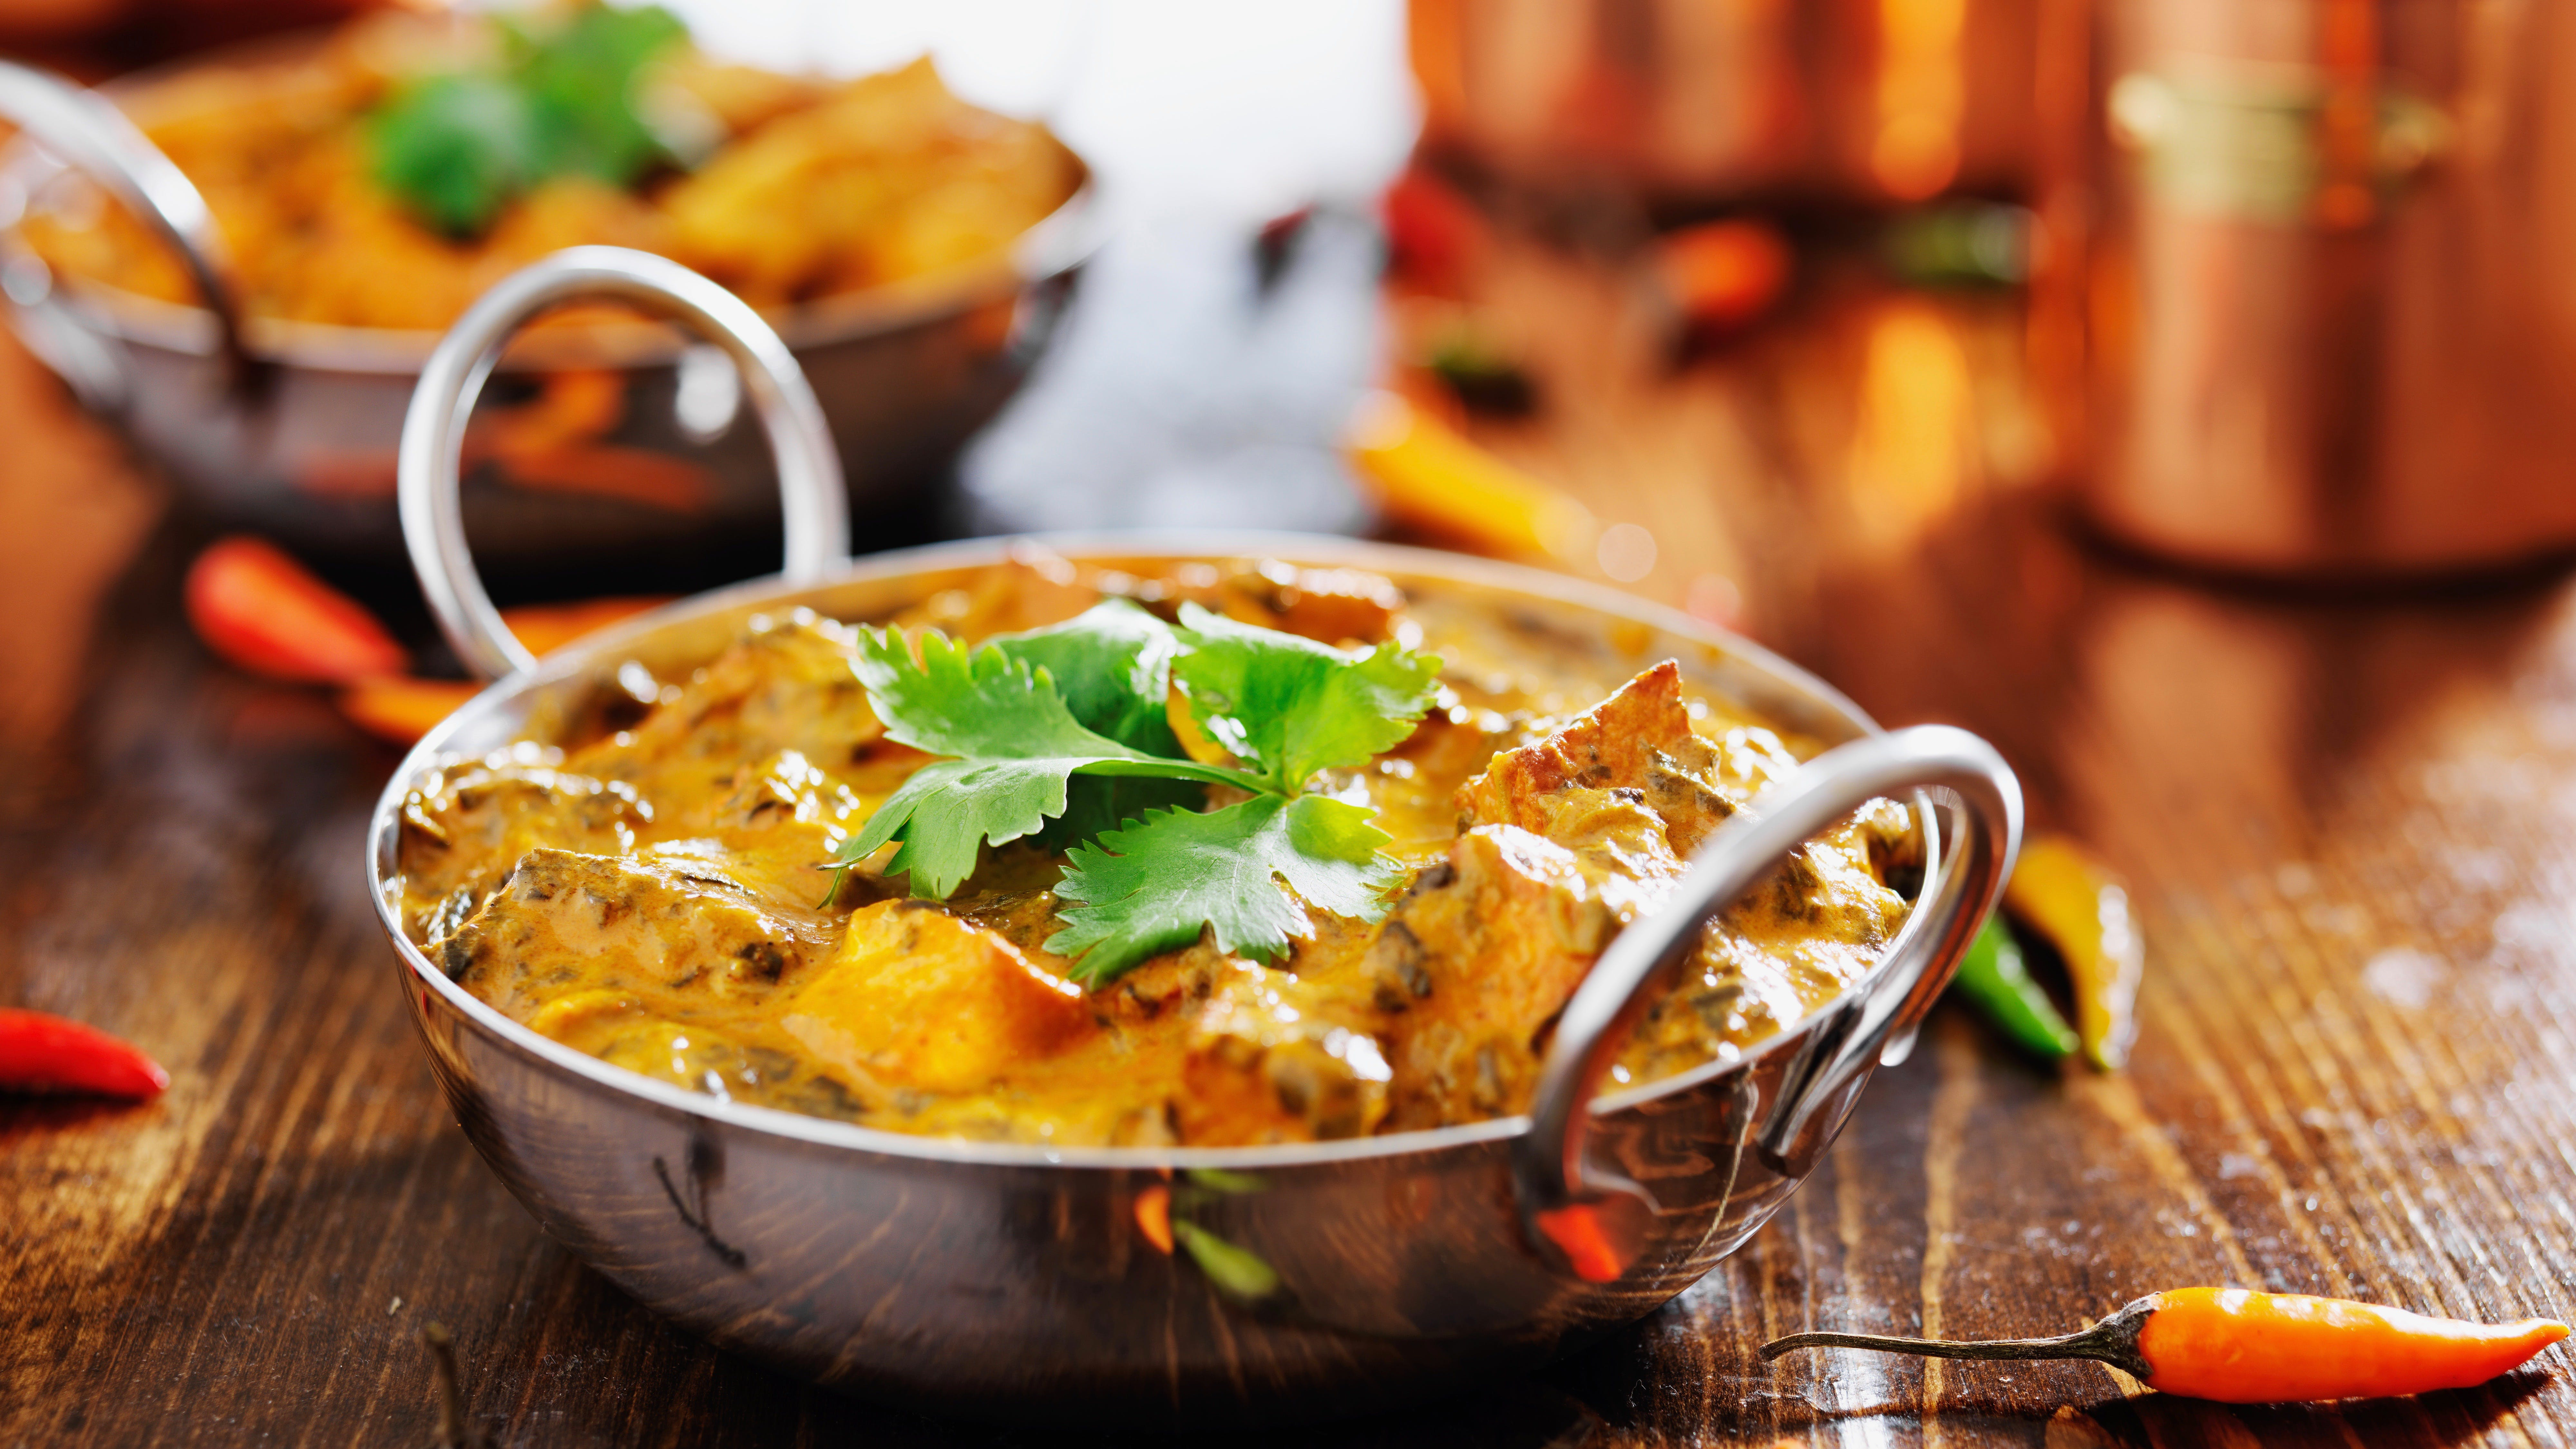 Two-meals-a-day strategy to fight type 2 diabetes in India